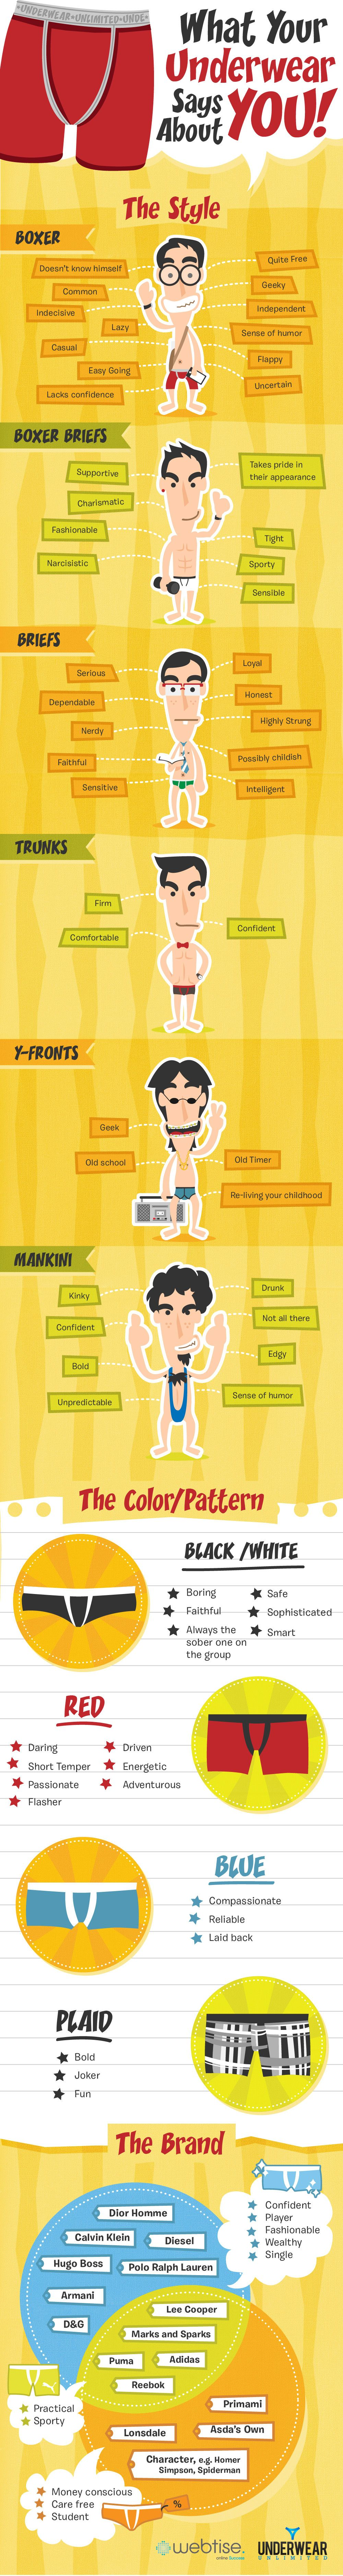 What Your Underwear Says About You